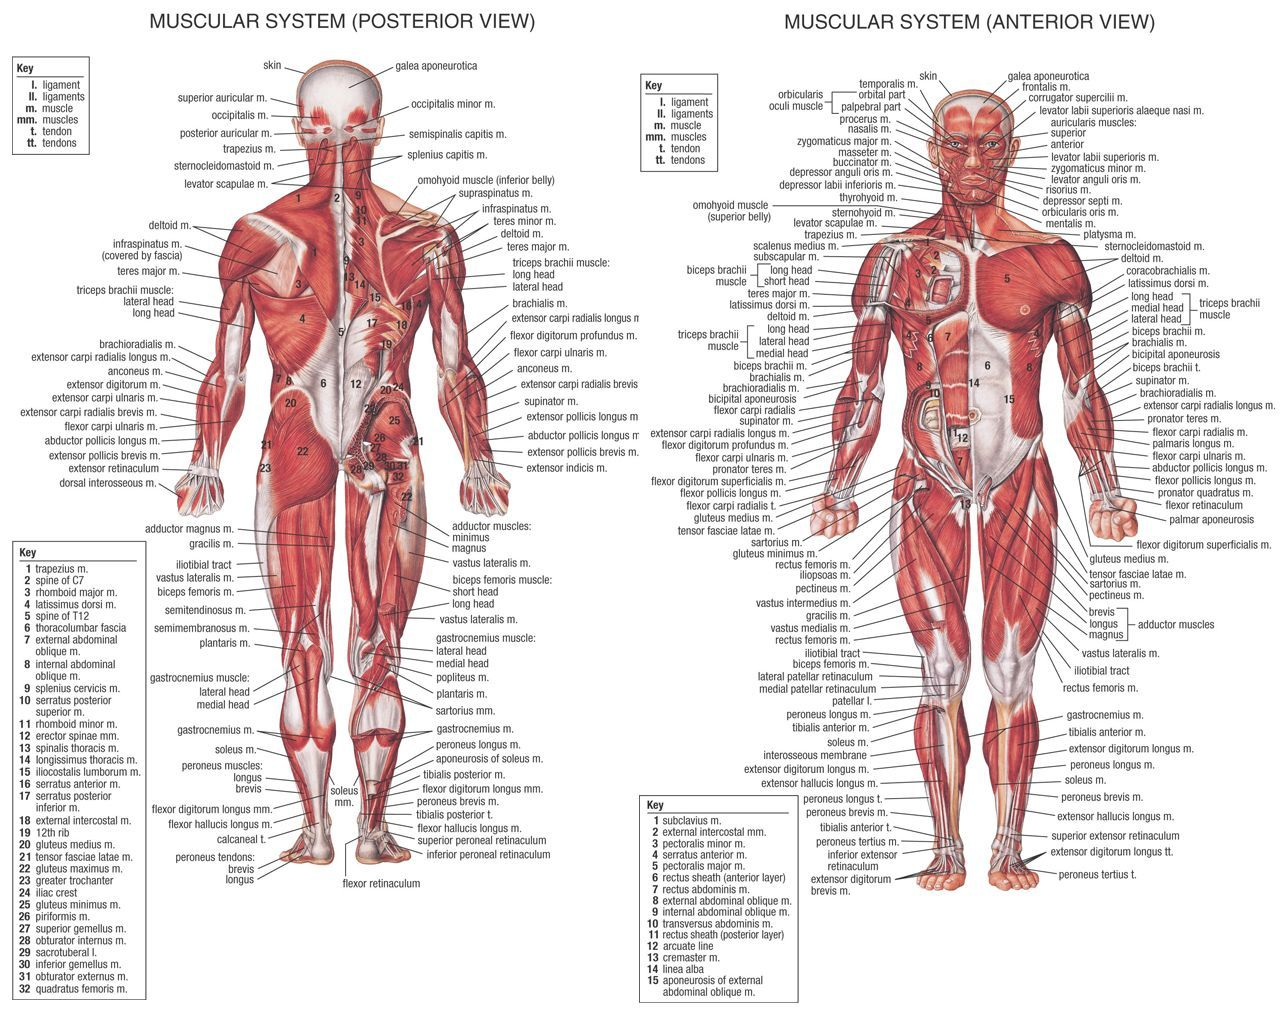 anatomy of the human body system | growablegreetings, Muscles